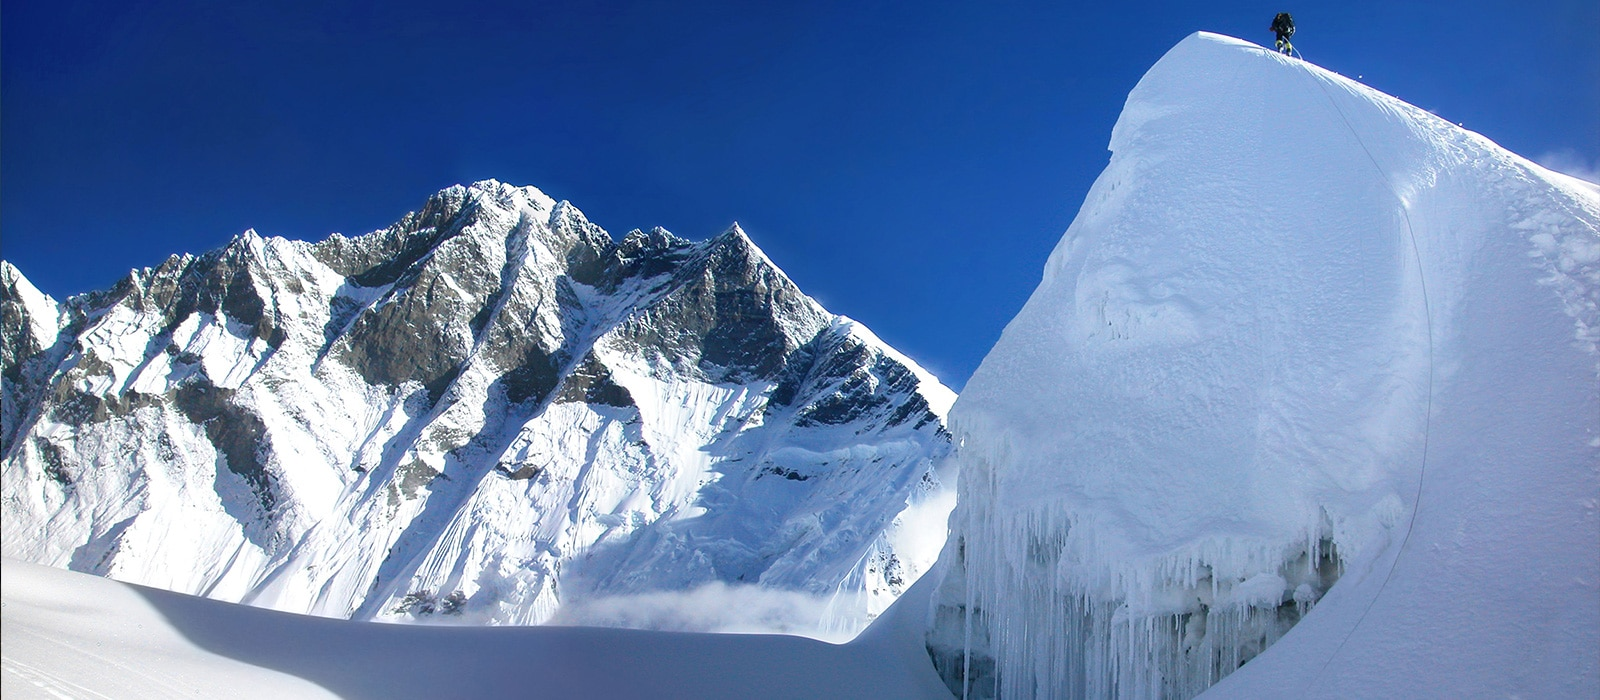 Lhotse Expedition – Nepal